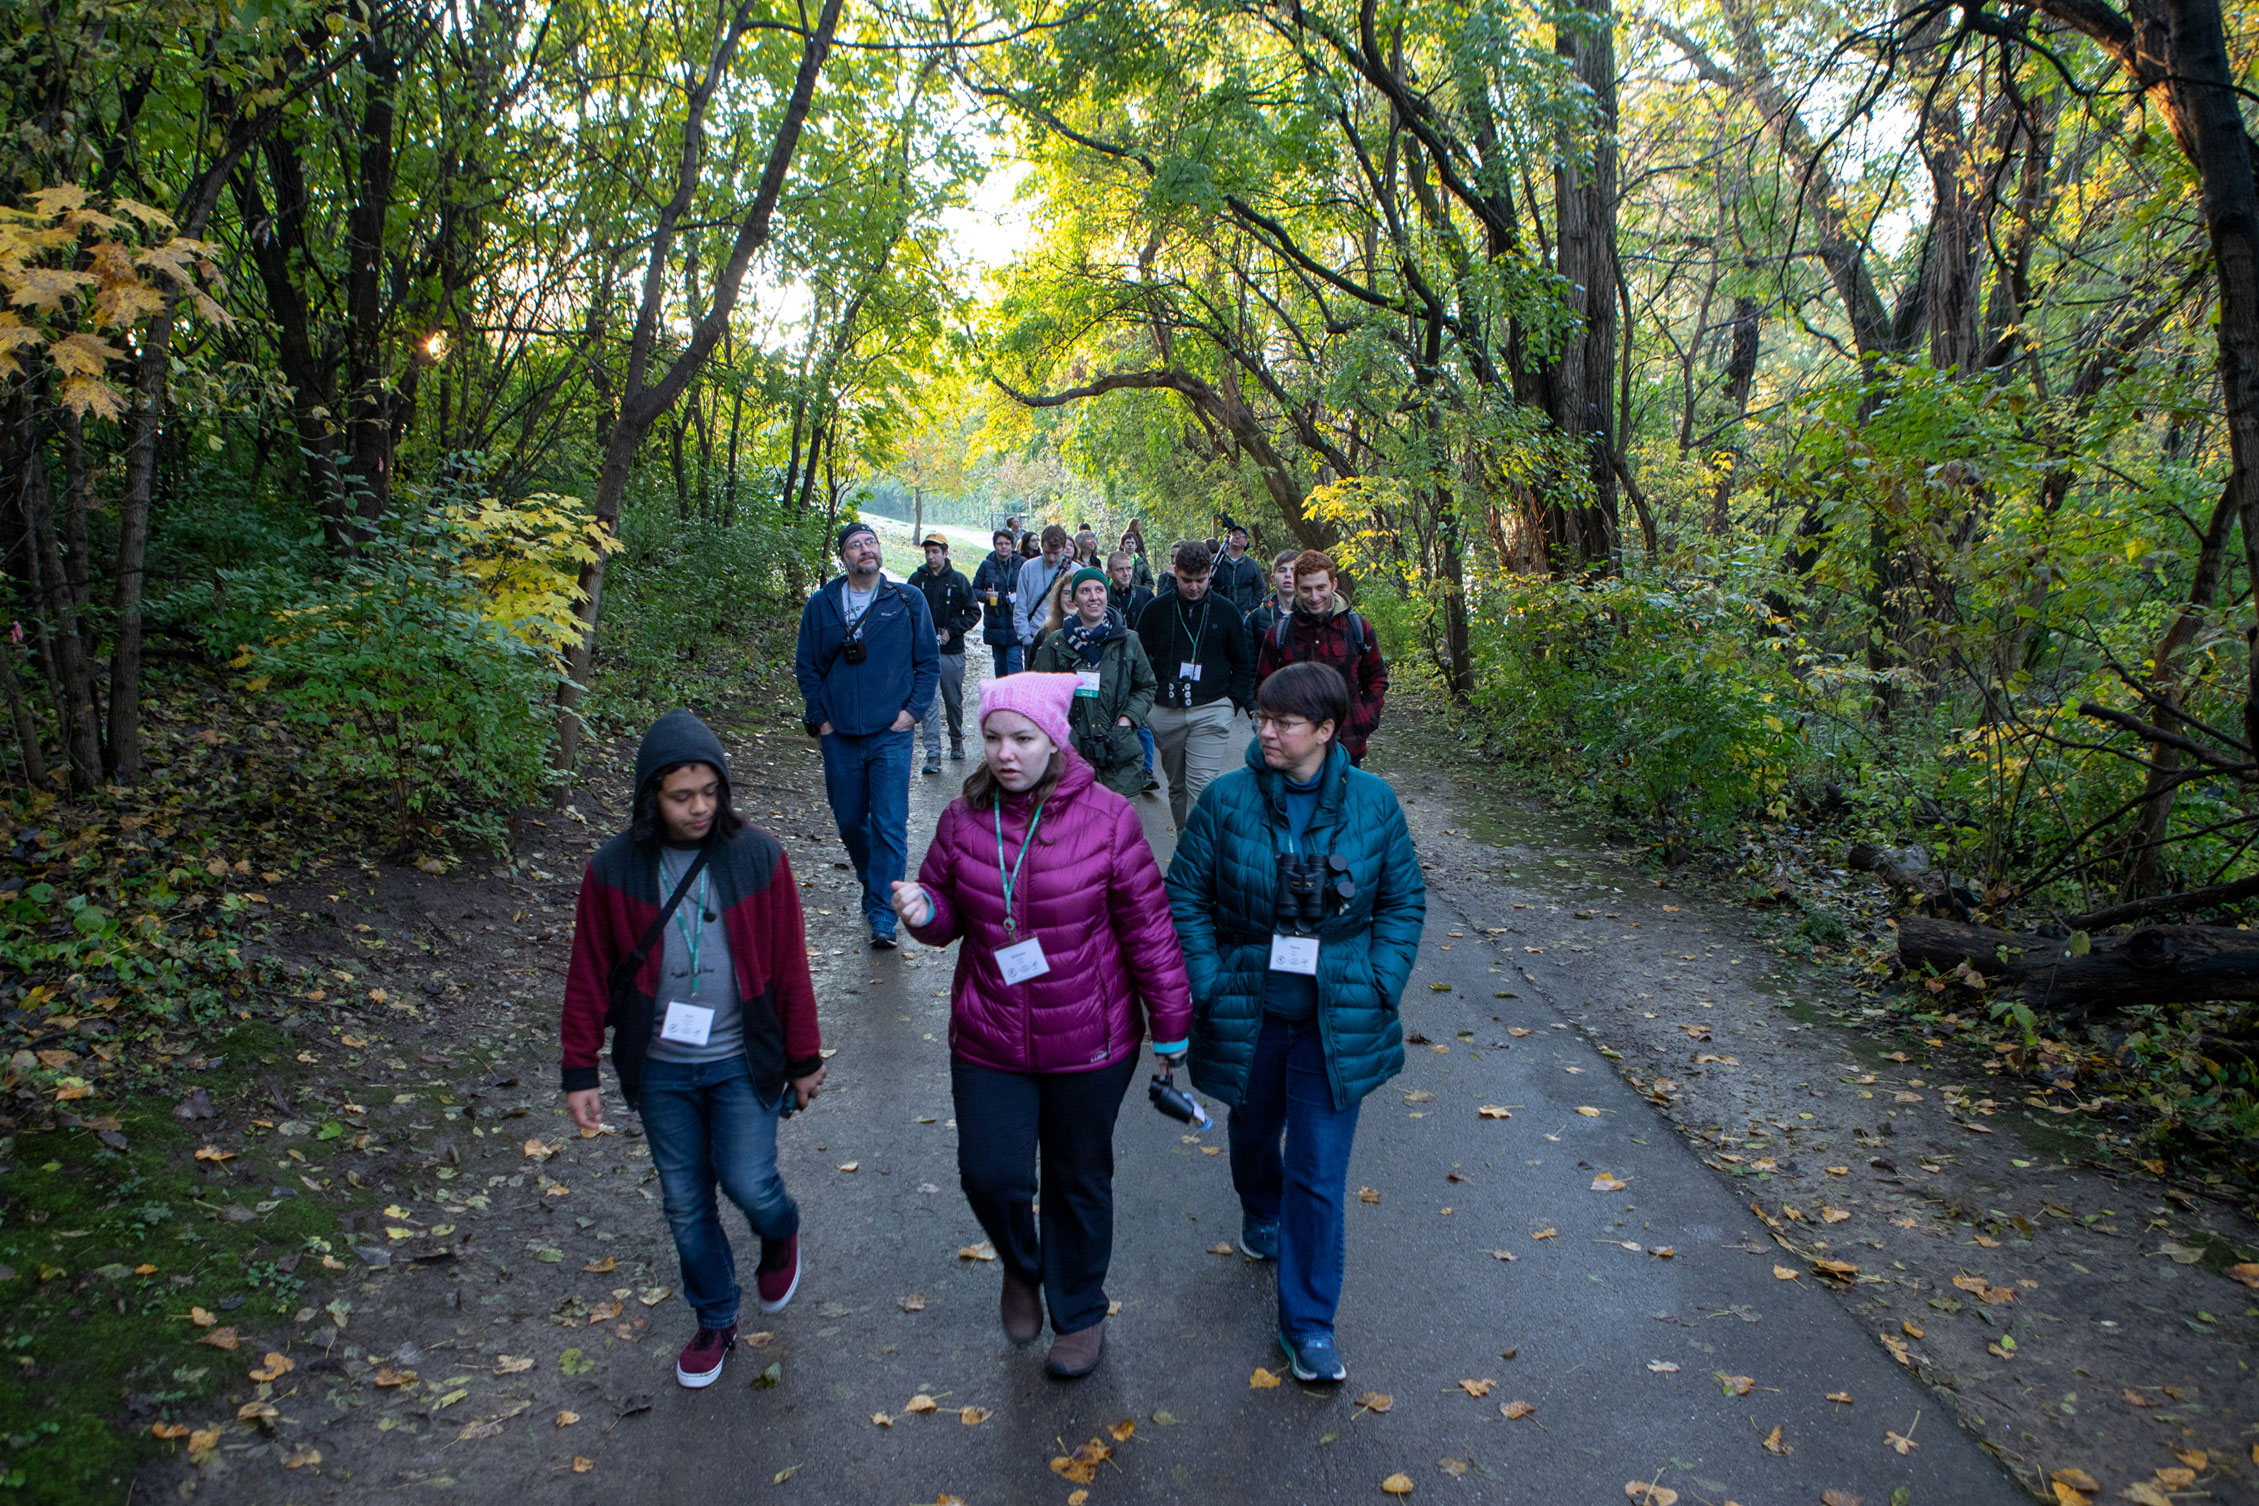 Winnicki's morning birding walk traced a route from the Grange Insurance Audubon Center to a nearby brownfield site. Camilla Cerea/Audubon